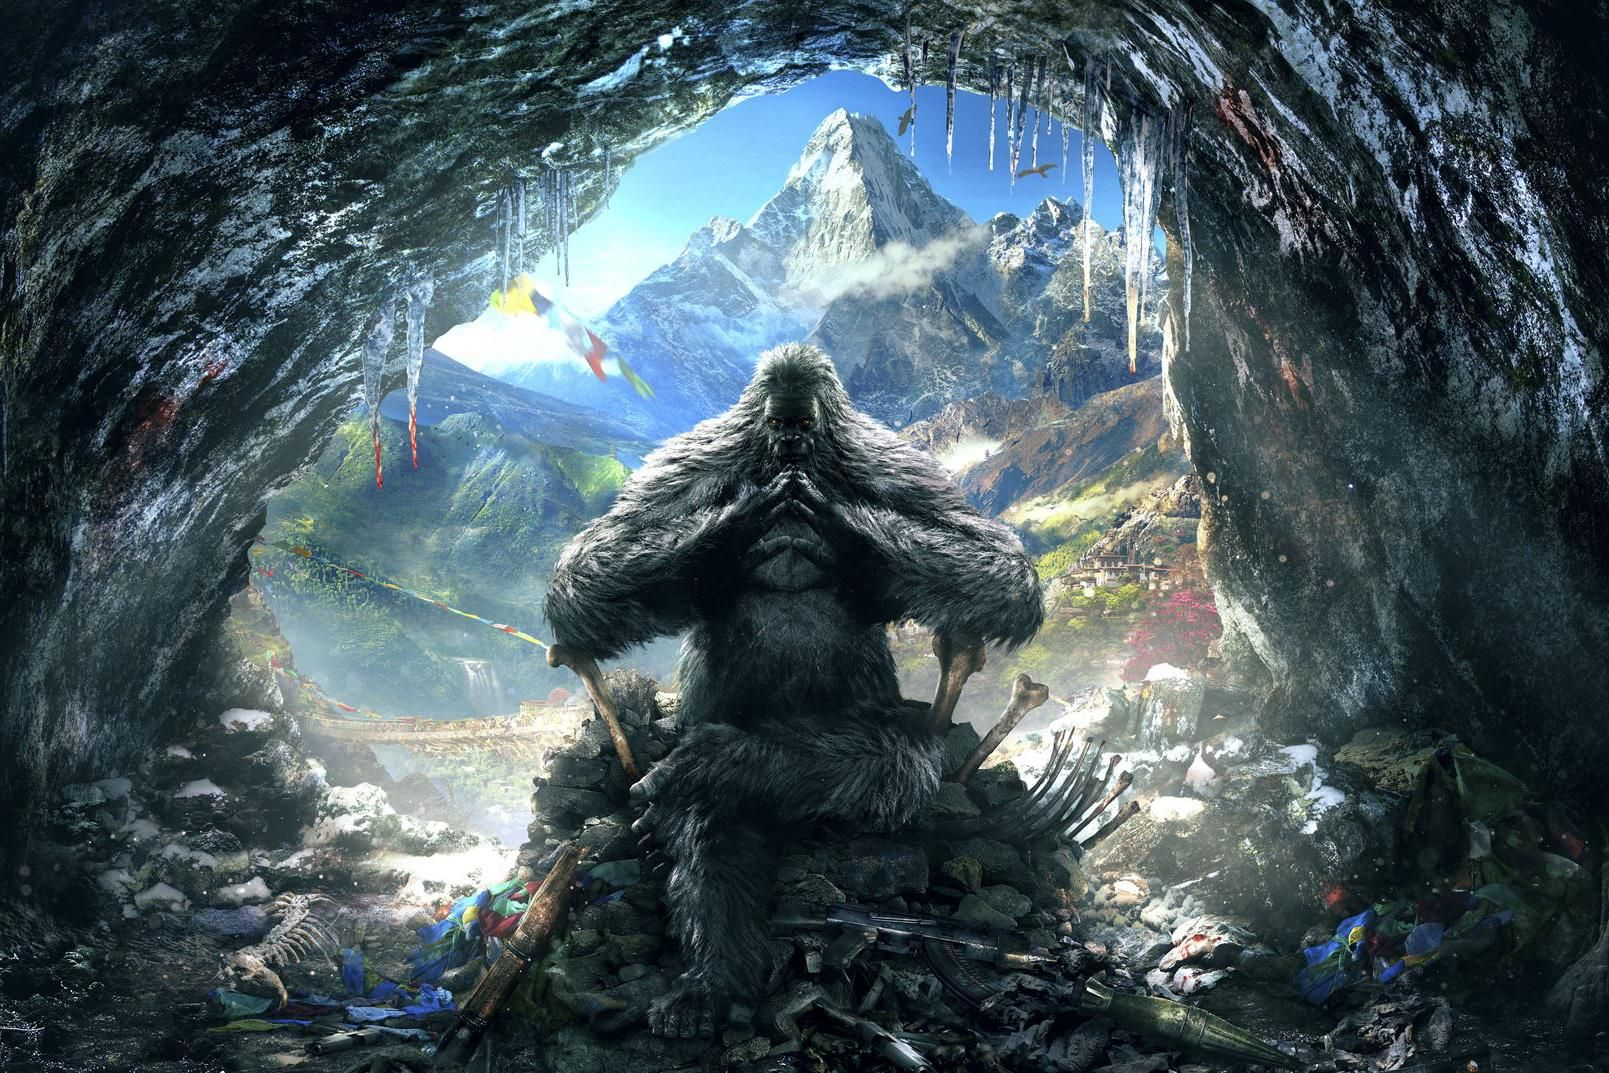 Survive Far Cry 4 S Valley Of The Yetis On March 10 Far Cry 4